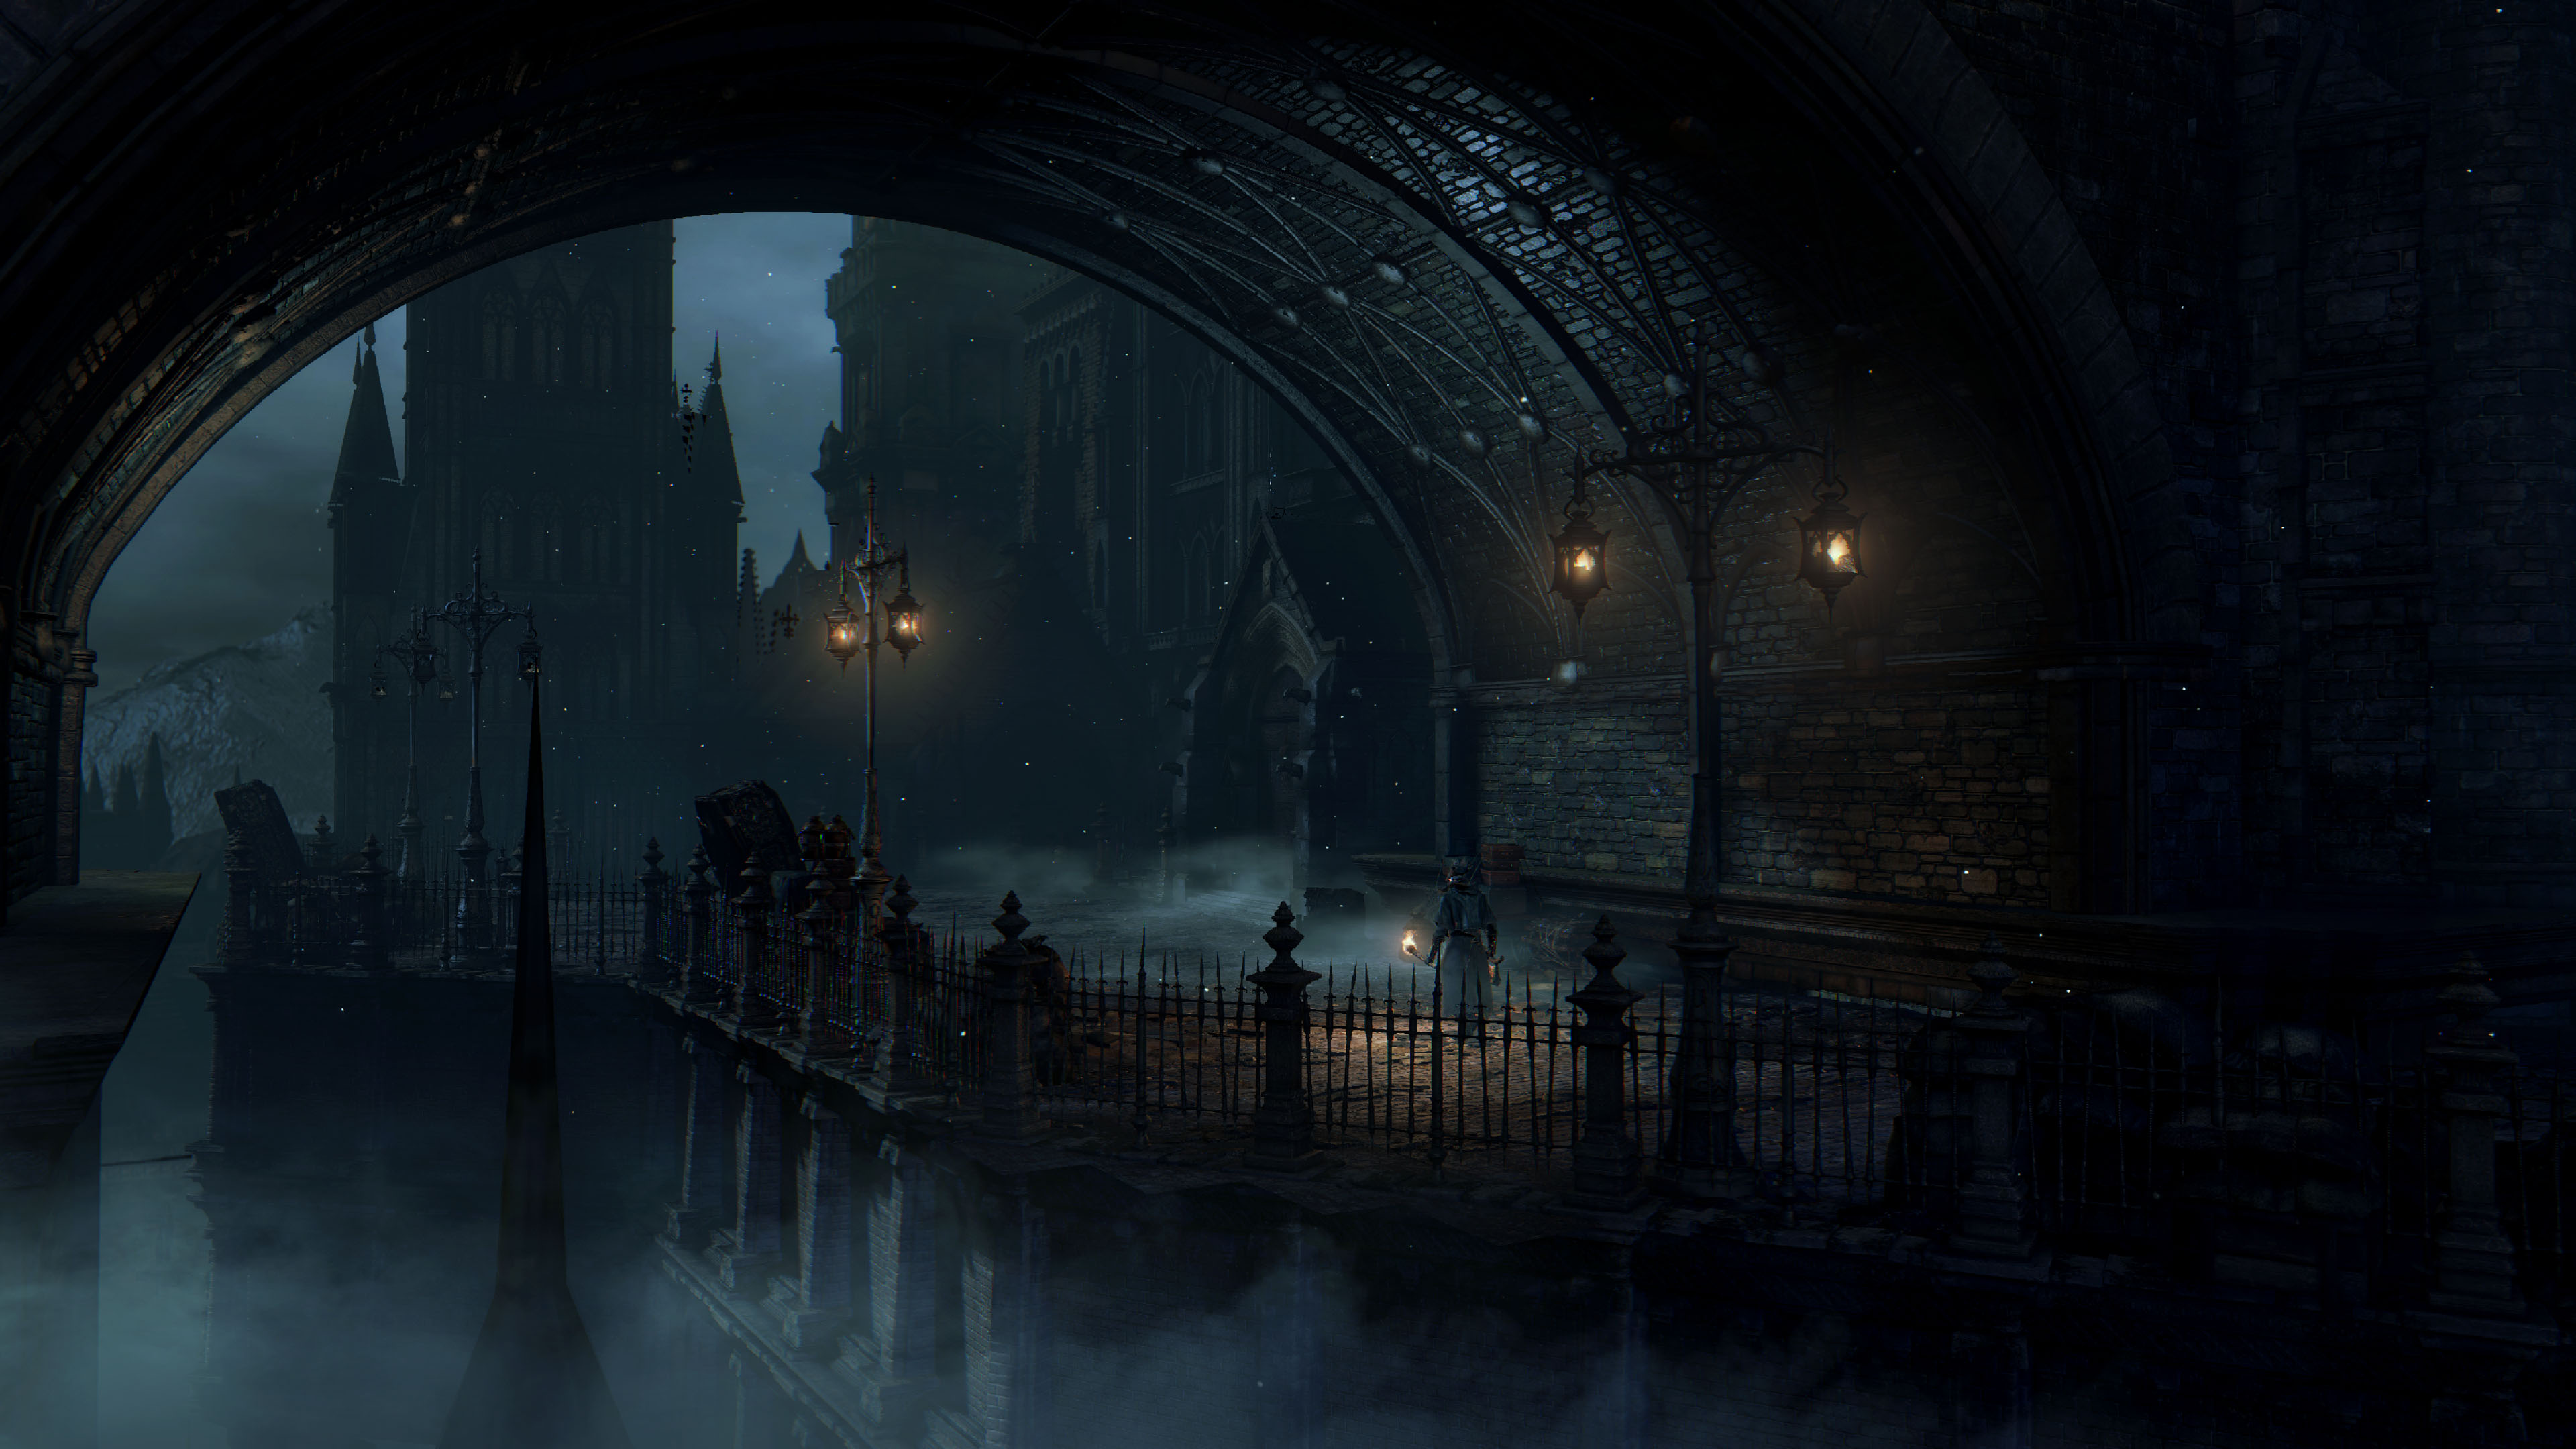 10 hd bloodborne wallpapers - Digital art wallpaper 3840x1080 ...